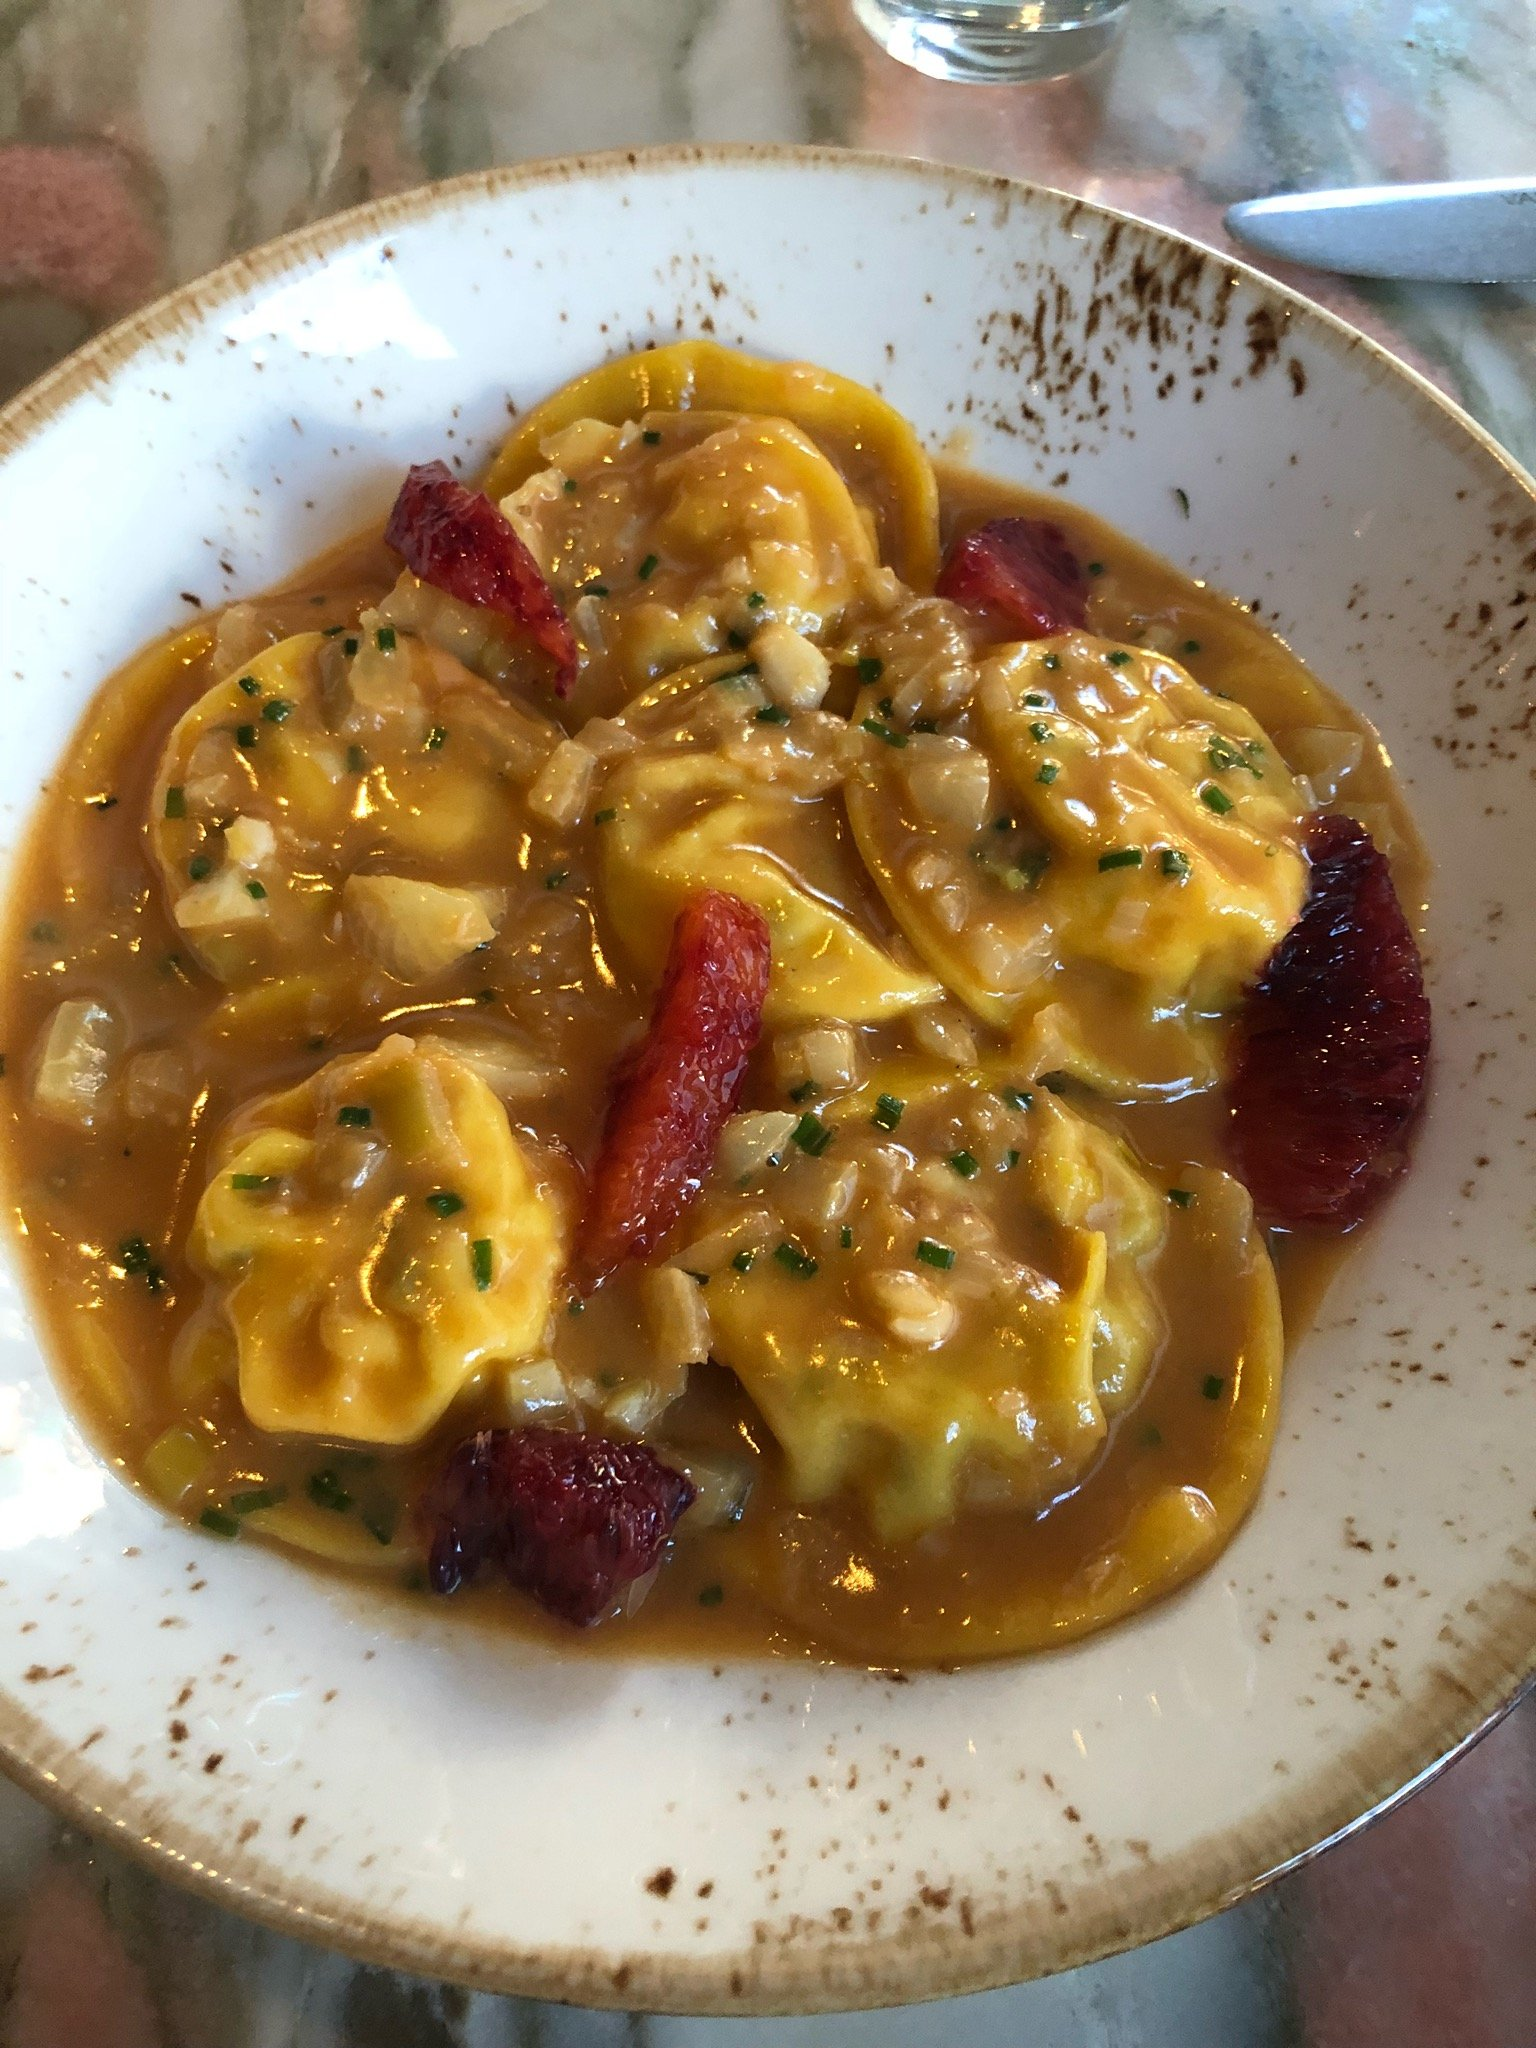 Lobster ravioli at San Lorenzo. Photograph courtesy of San Lorenzo.